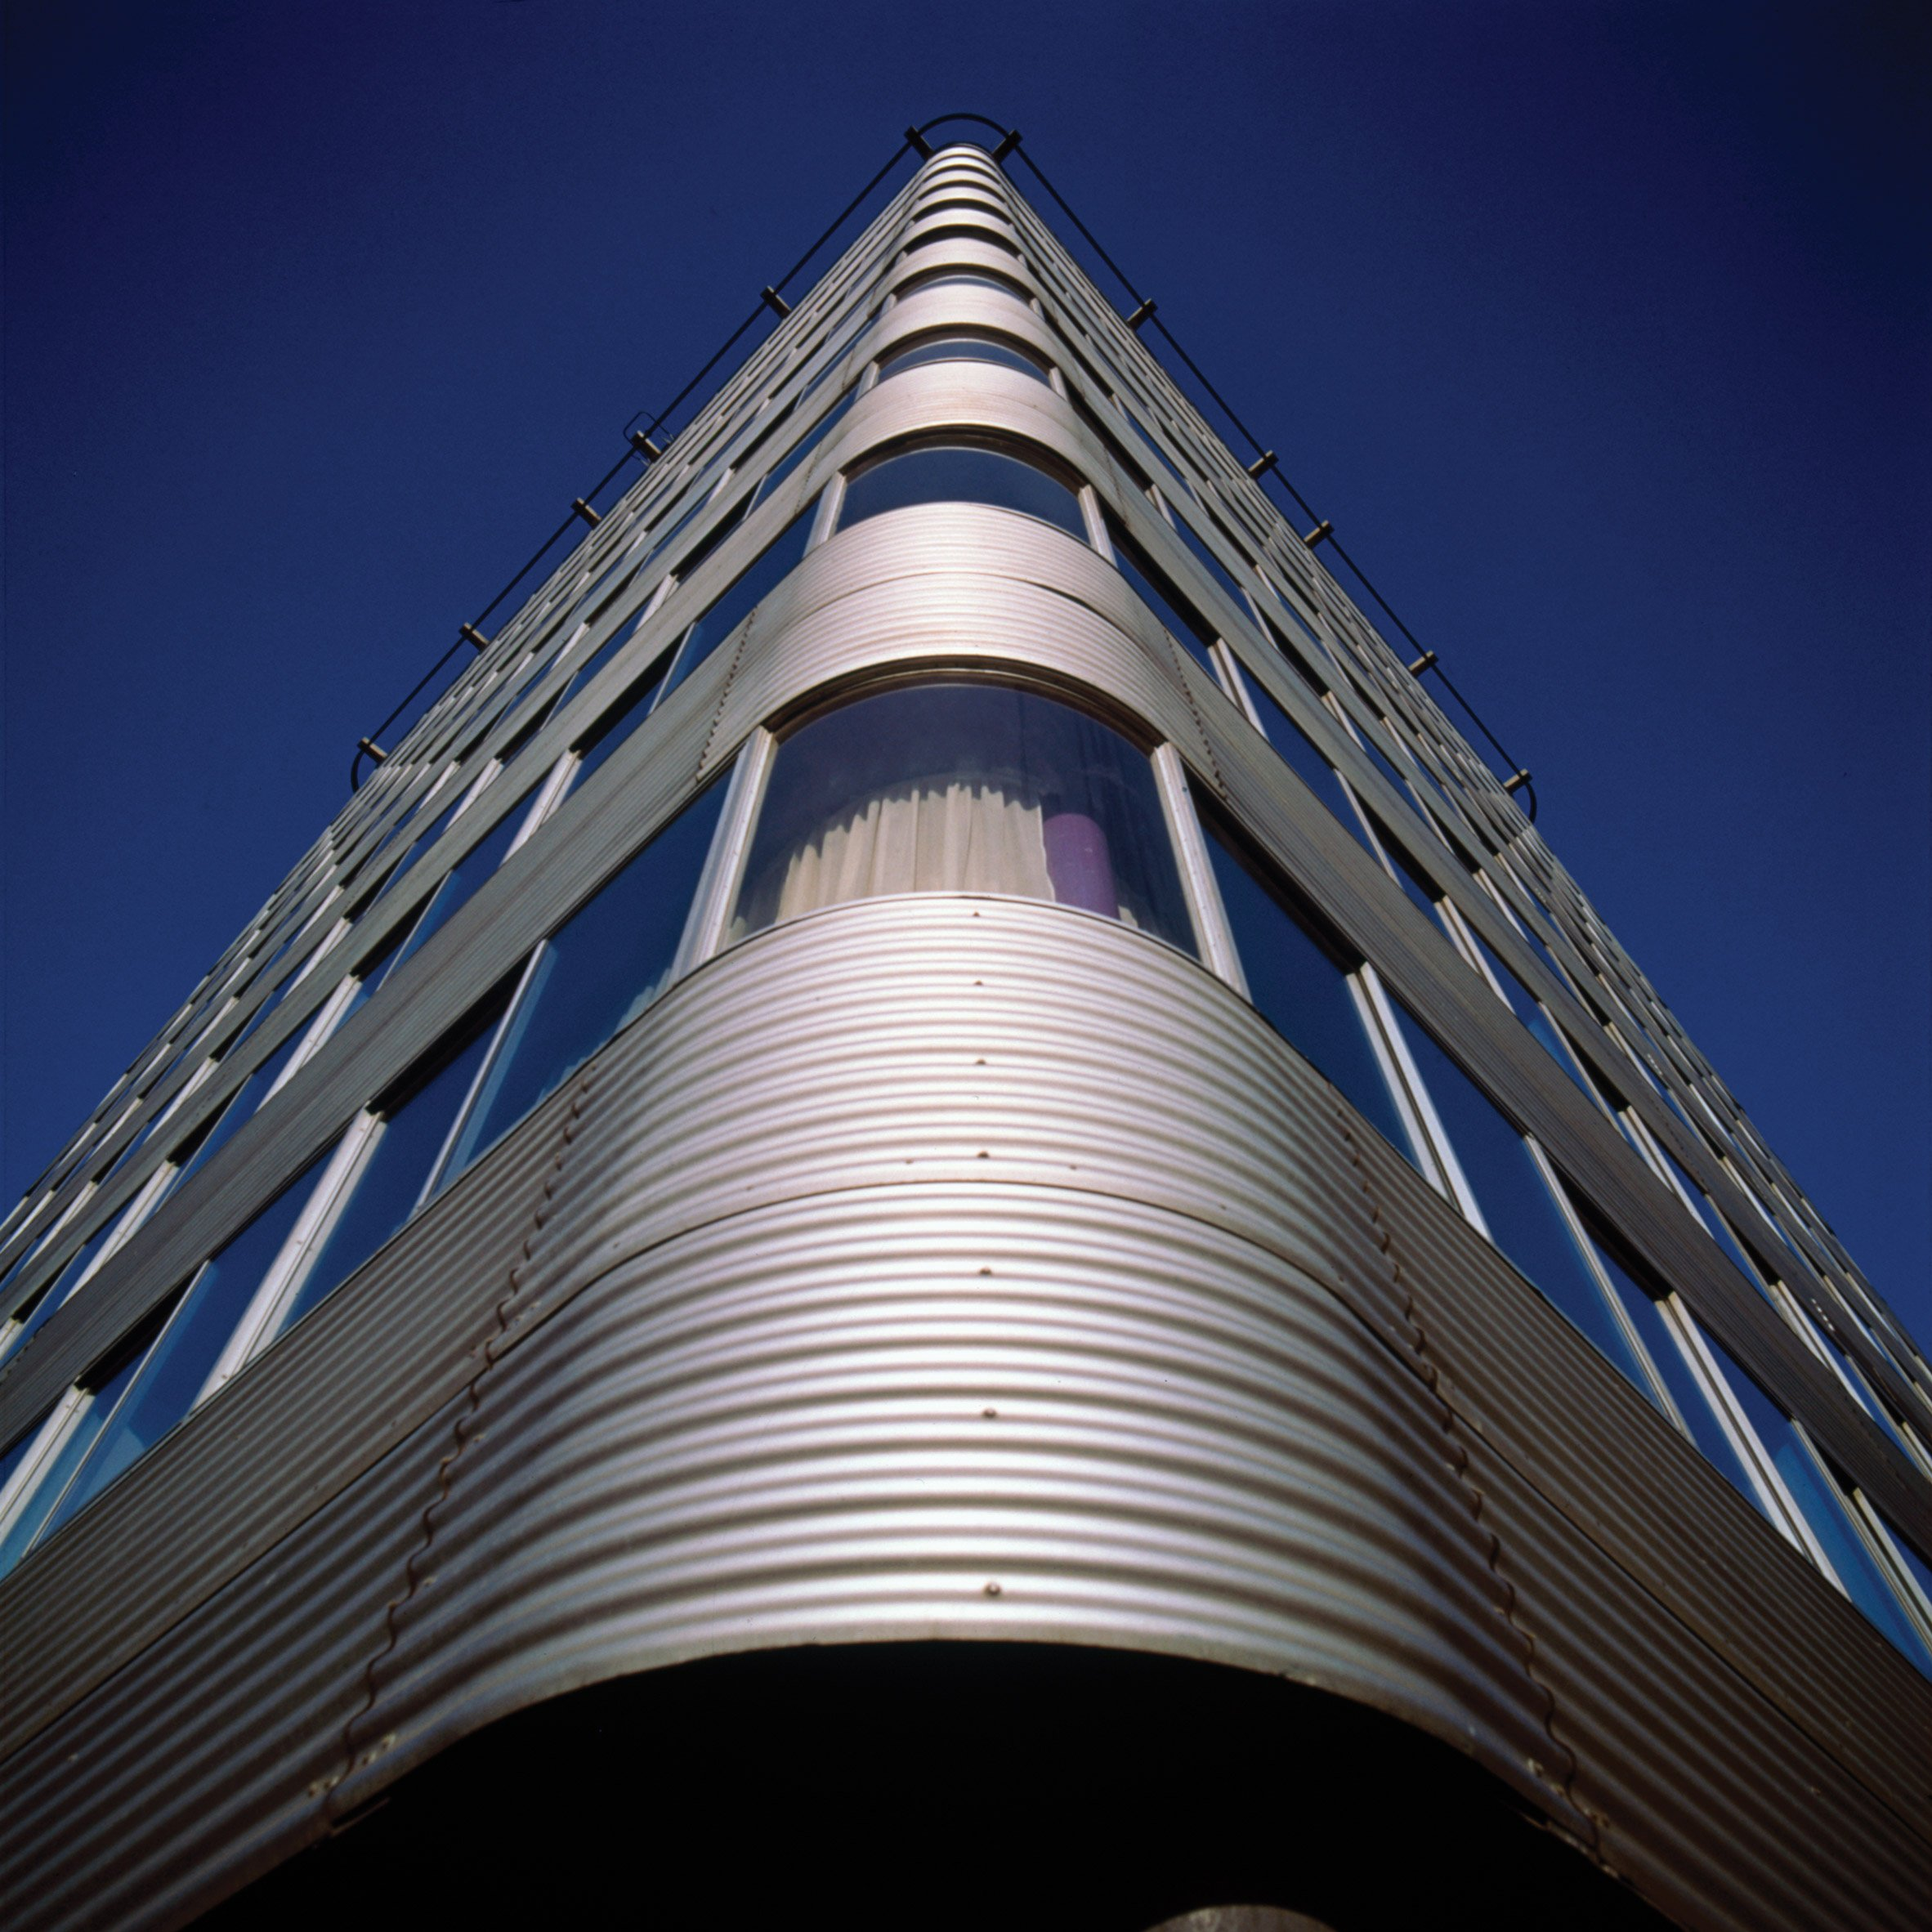 High-tech buildings: Park Road Apartments by Grimshaw Architects